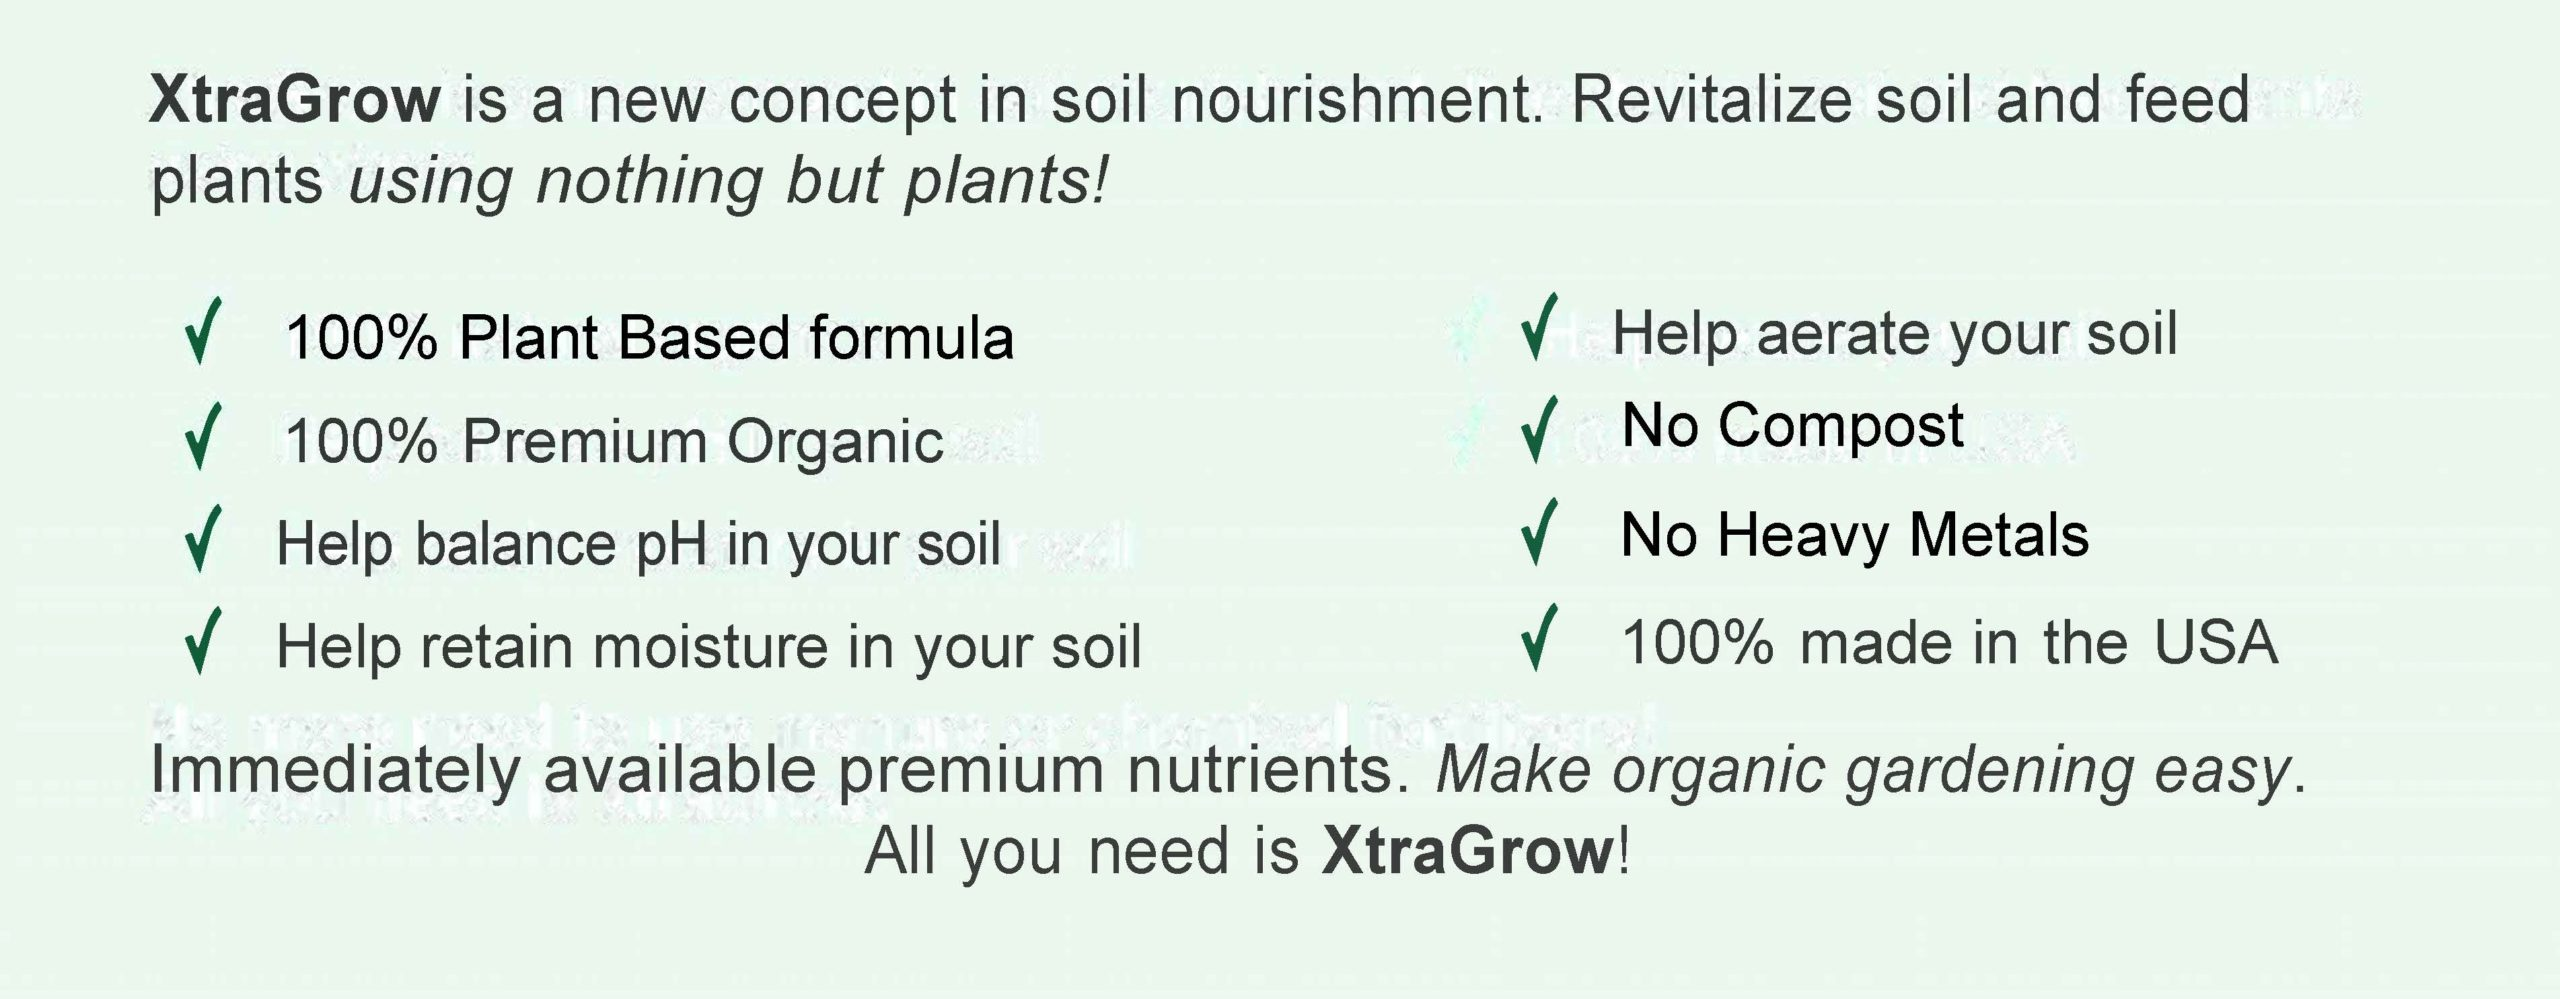 Premium Organic Plant Based Fertilizer Check List